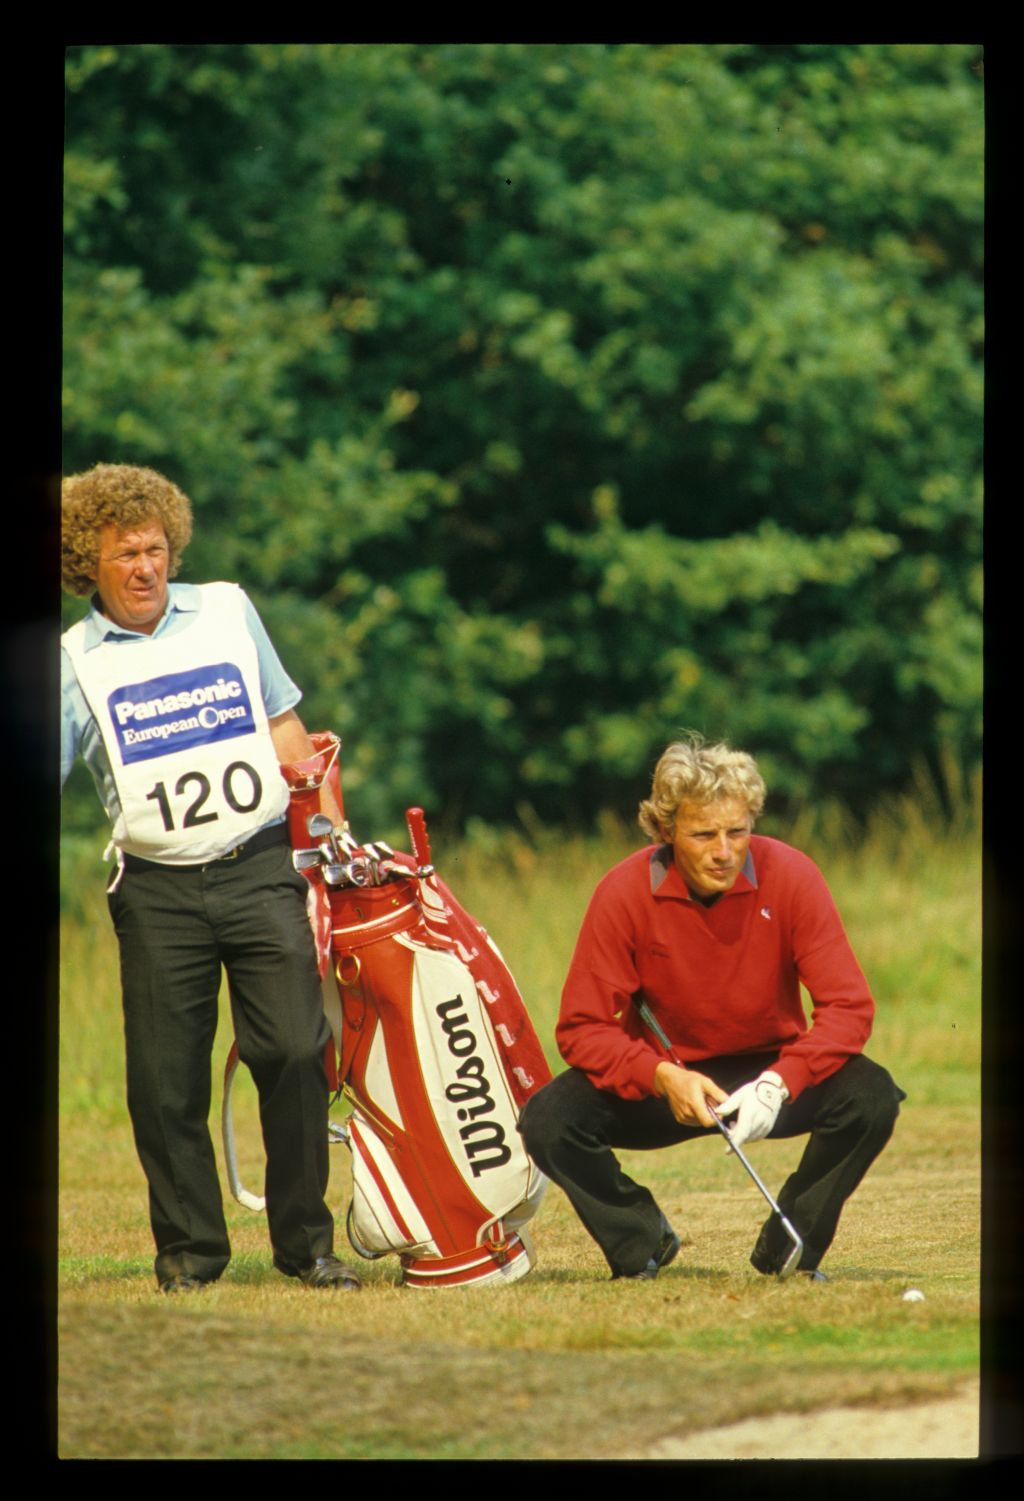 Bernhard Langer and his caddie considering a shot from the rough during the 1984 Panasonic Euroepean Open